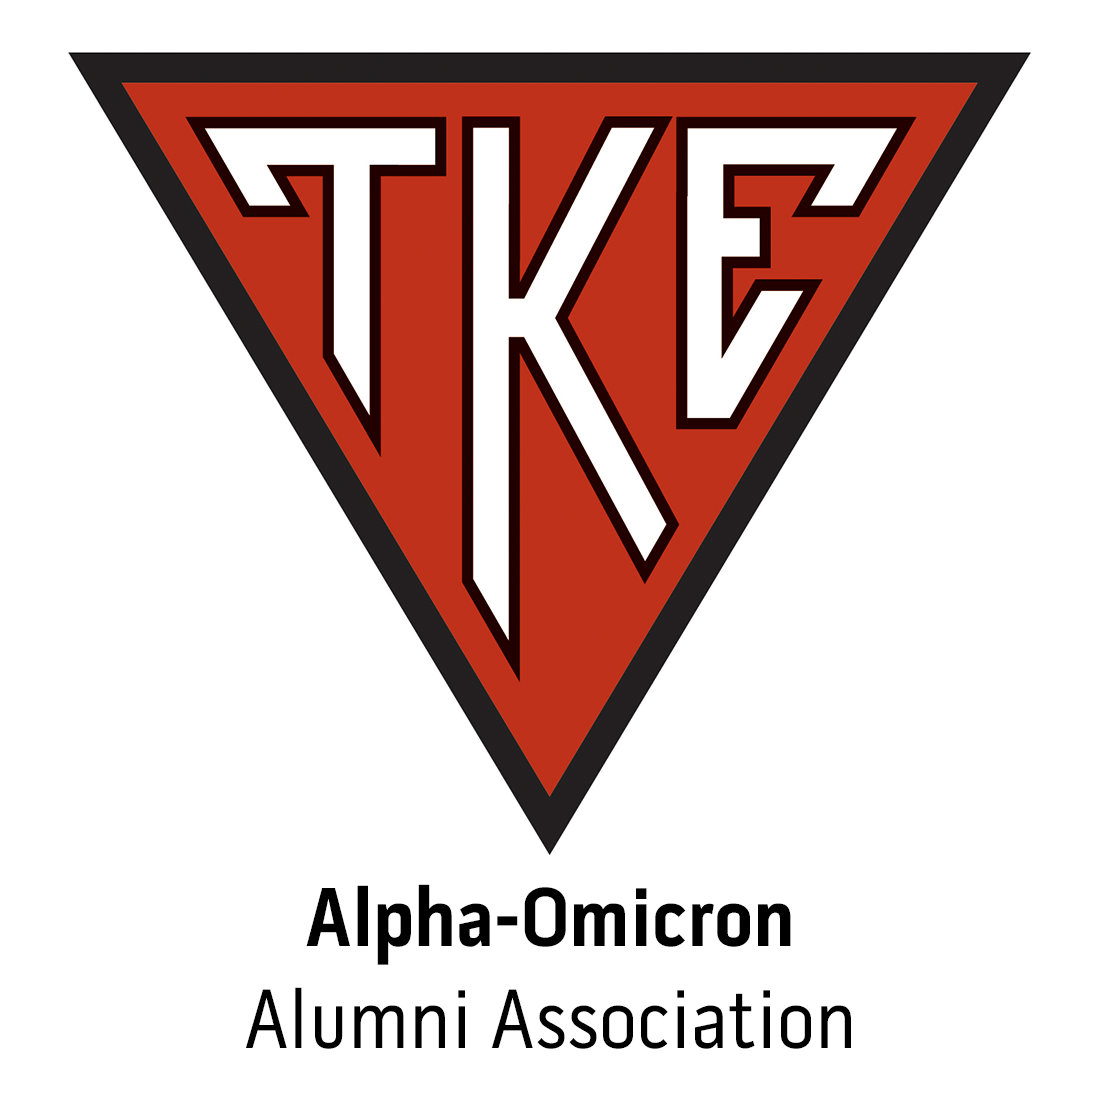 Alpha-Omicron Alumni Association at New Mexico State University